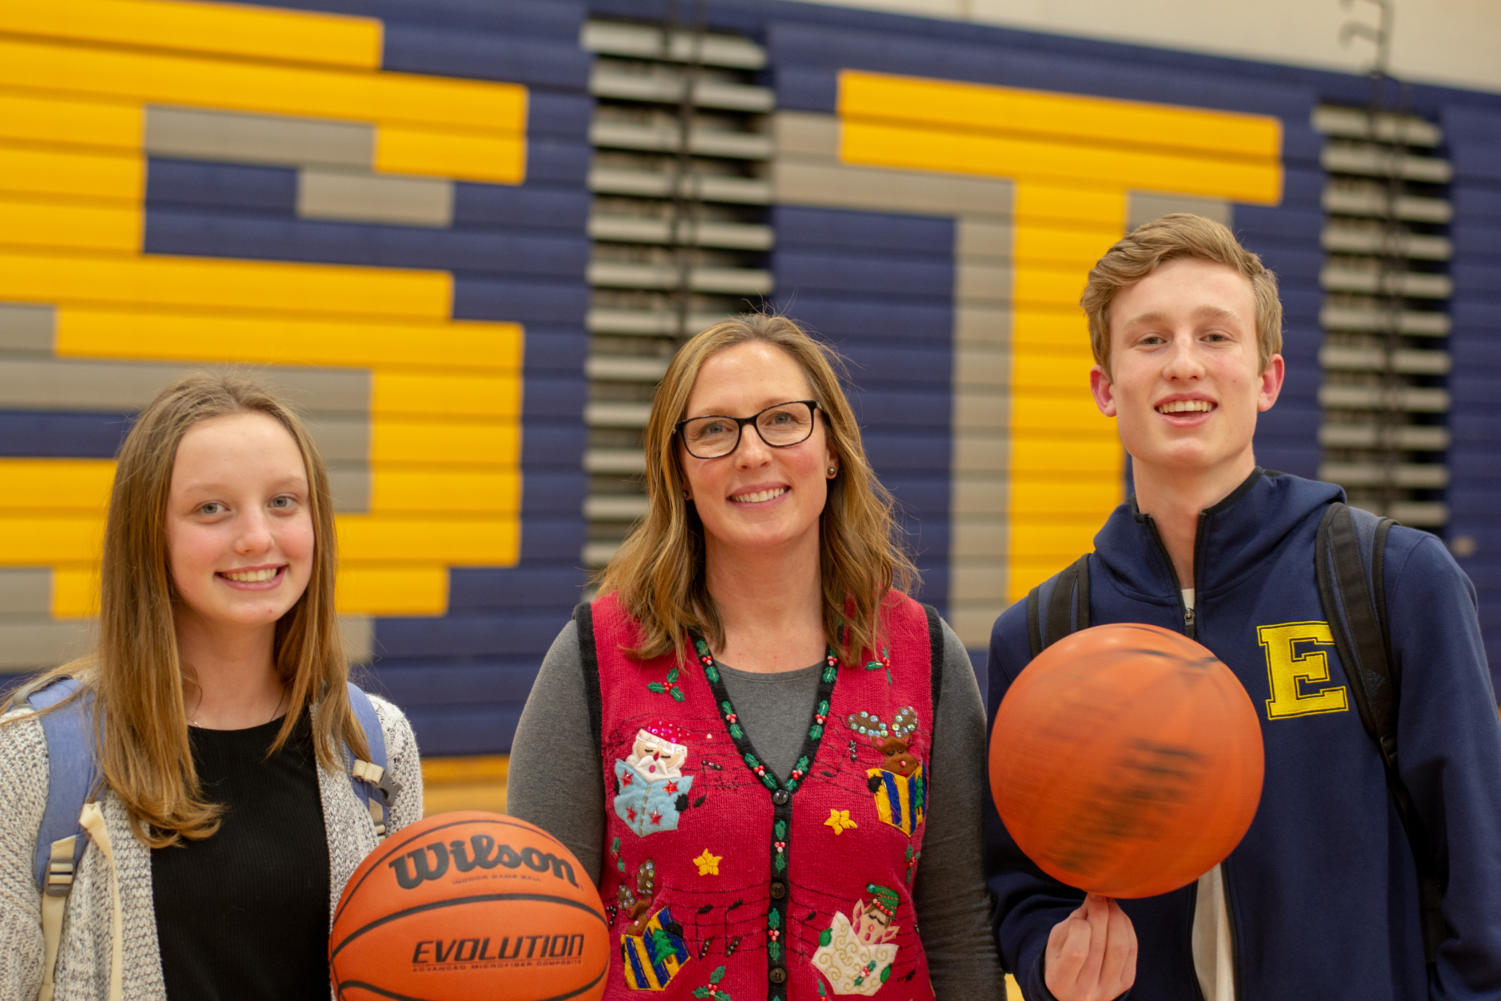 Chemistry teacher and coach Heather Carlson plays basketball with junior son Brendan and freshman daughter Alli.